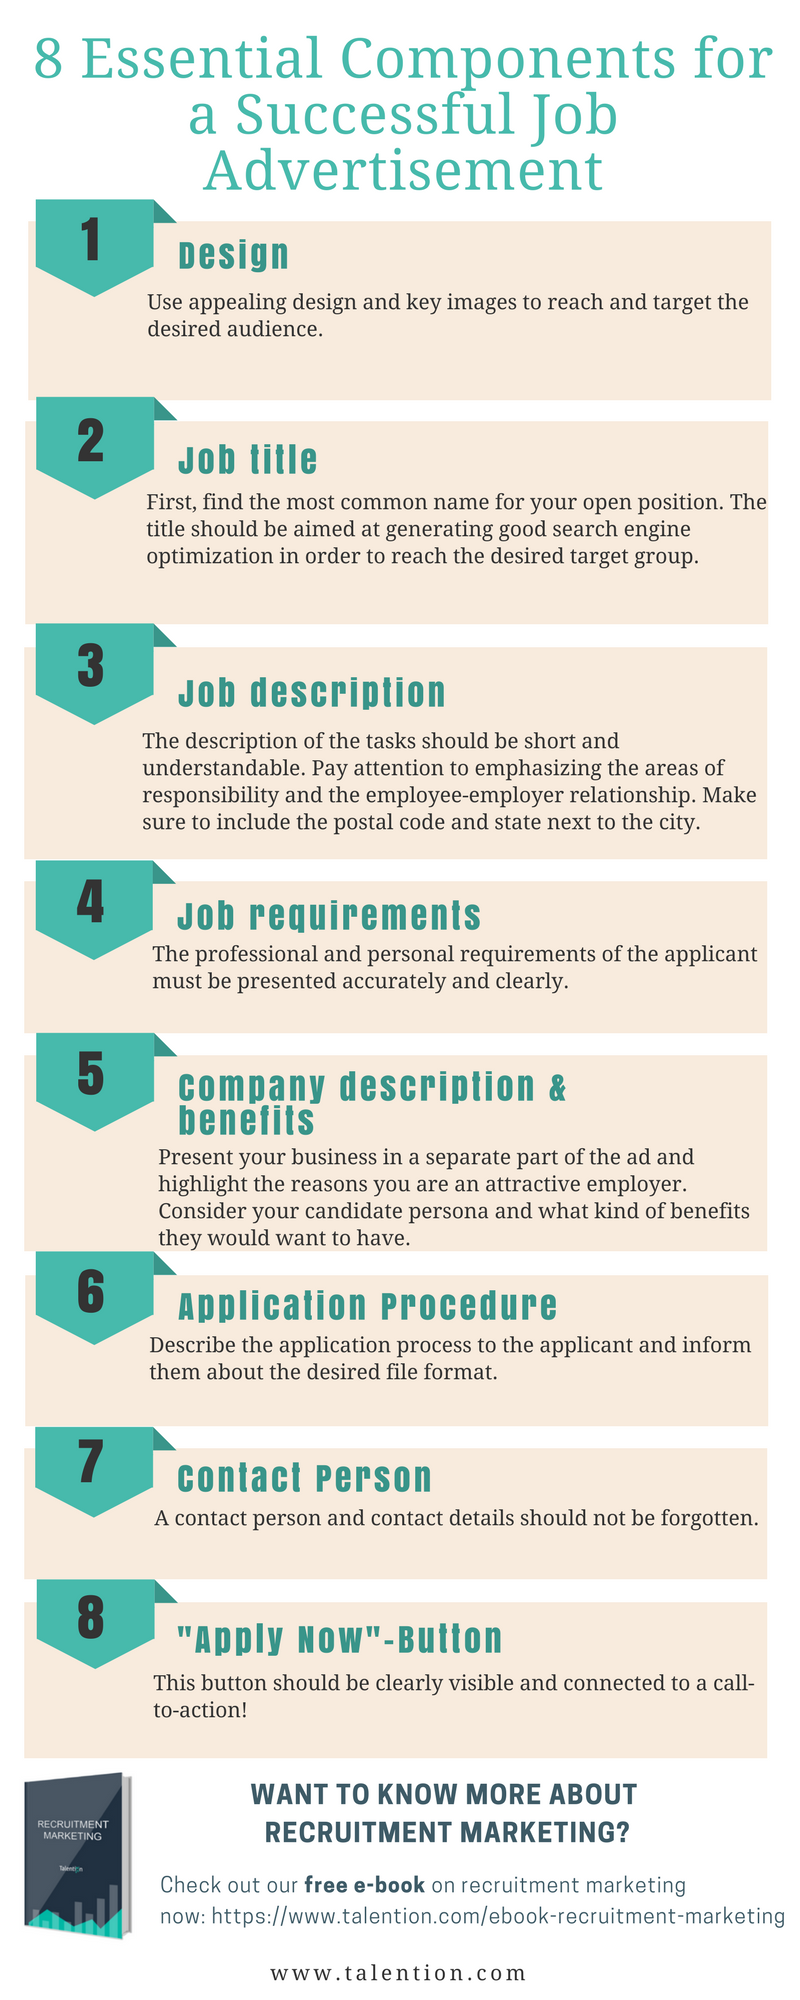 8 Essential Components for a Successful Job Advertisement